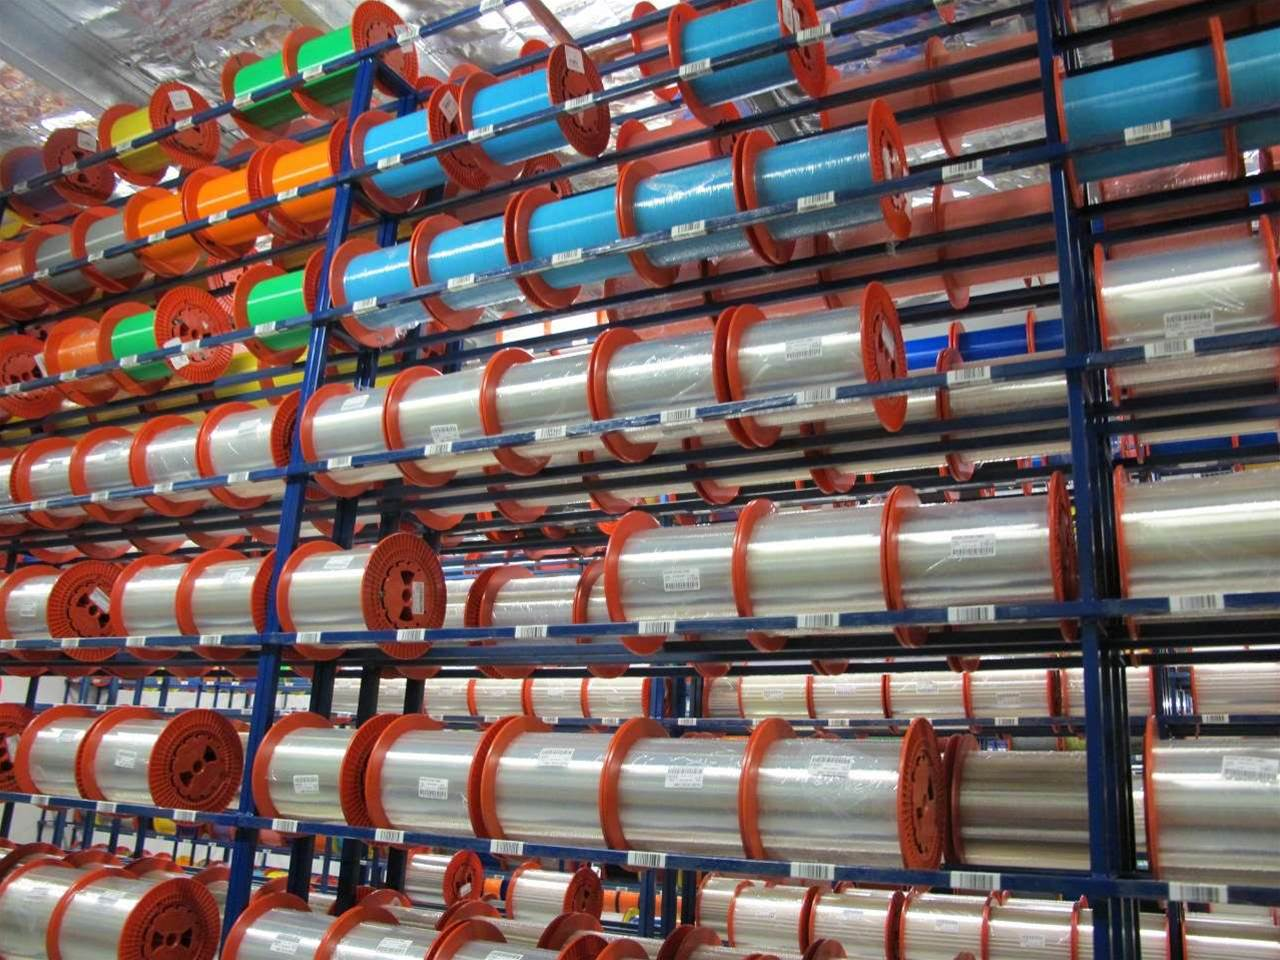 Cable racks at the Prysmian cable manufacturing plant.